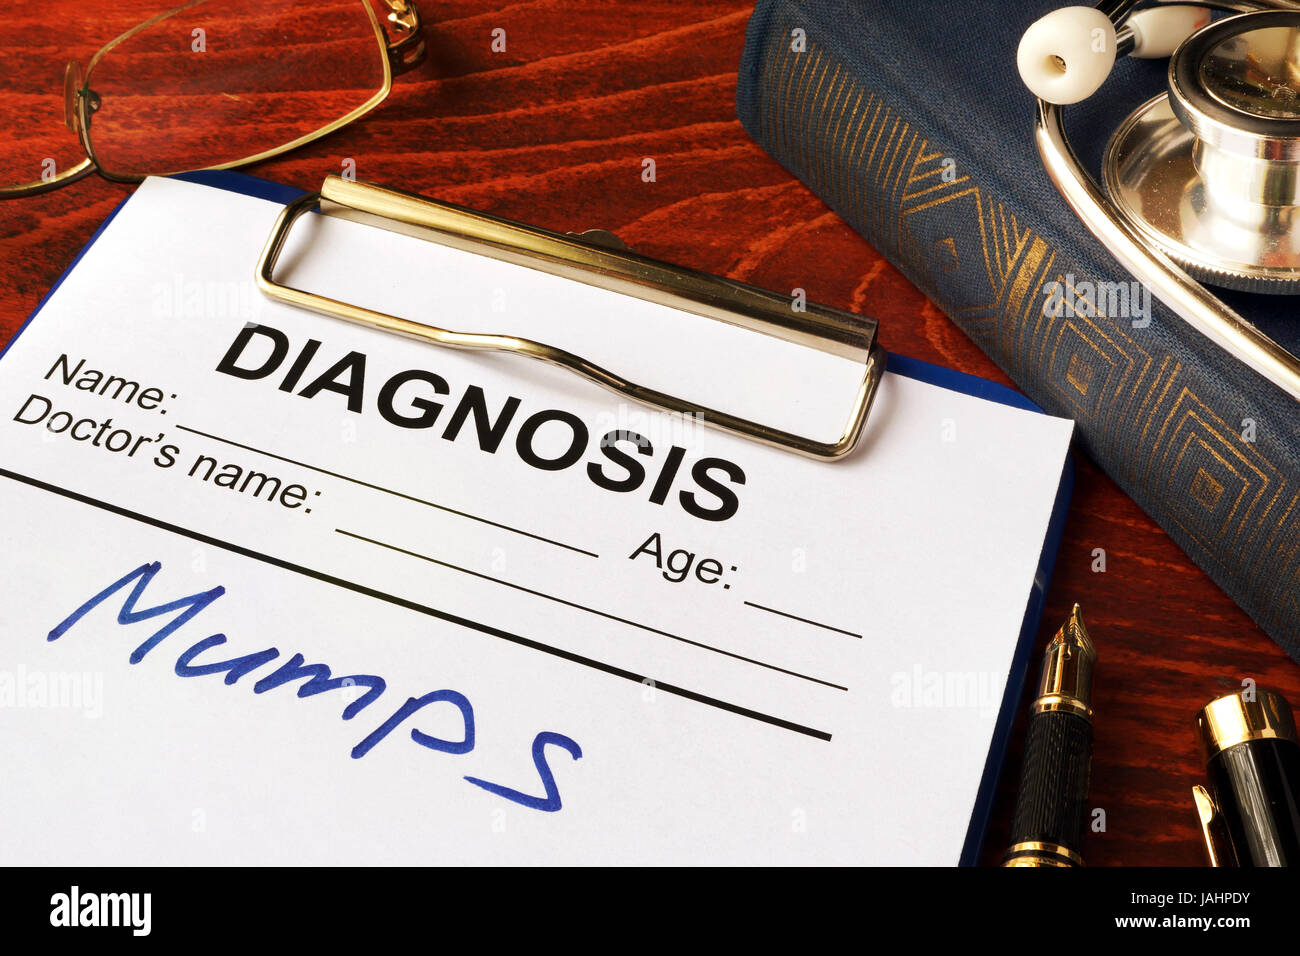 Medical form with diagnosis Mumps on a table. - Stock Image